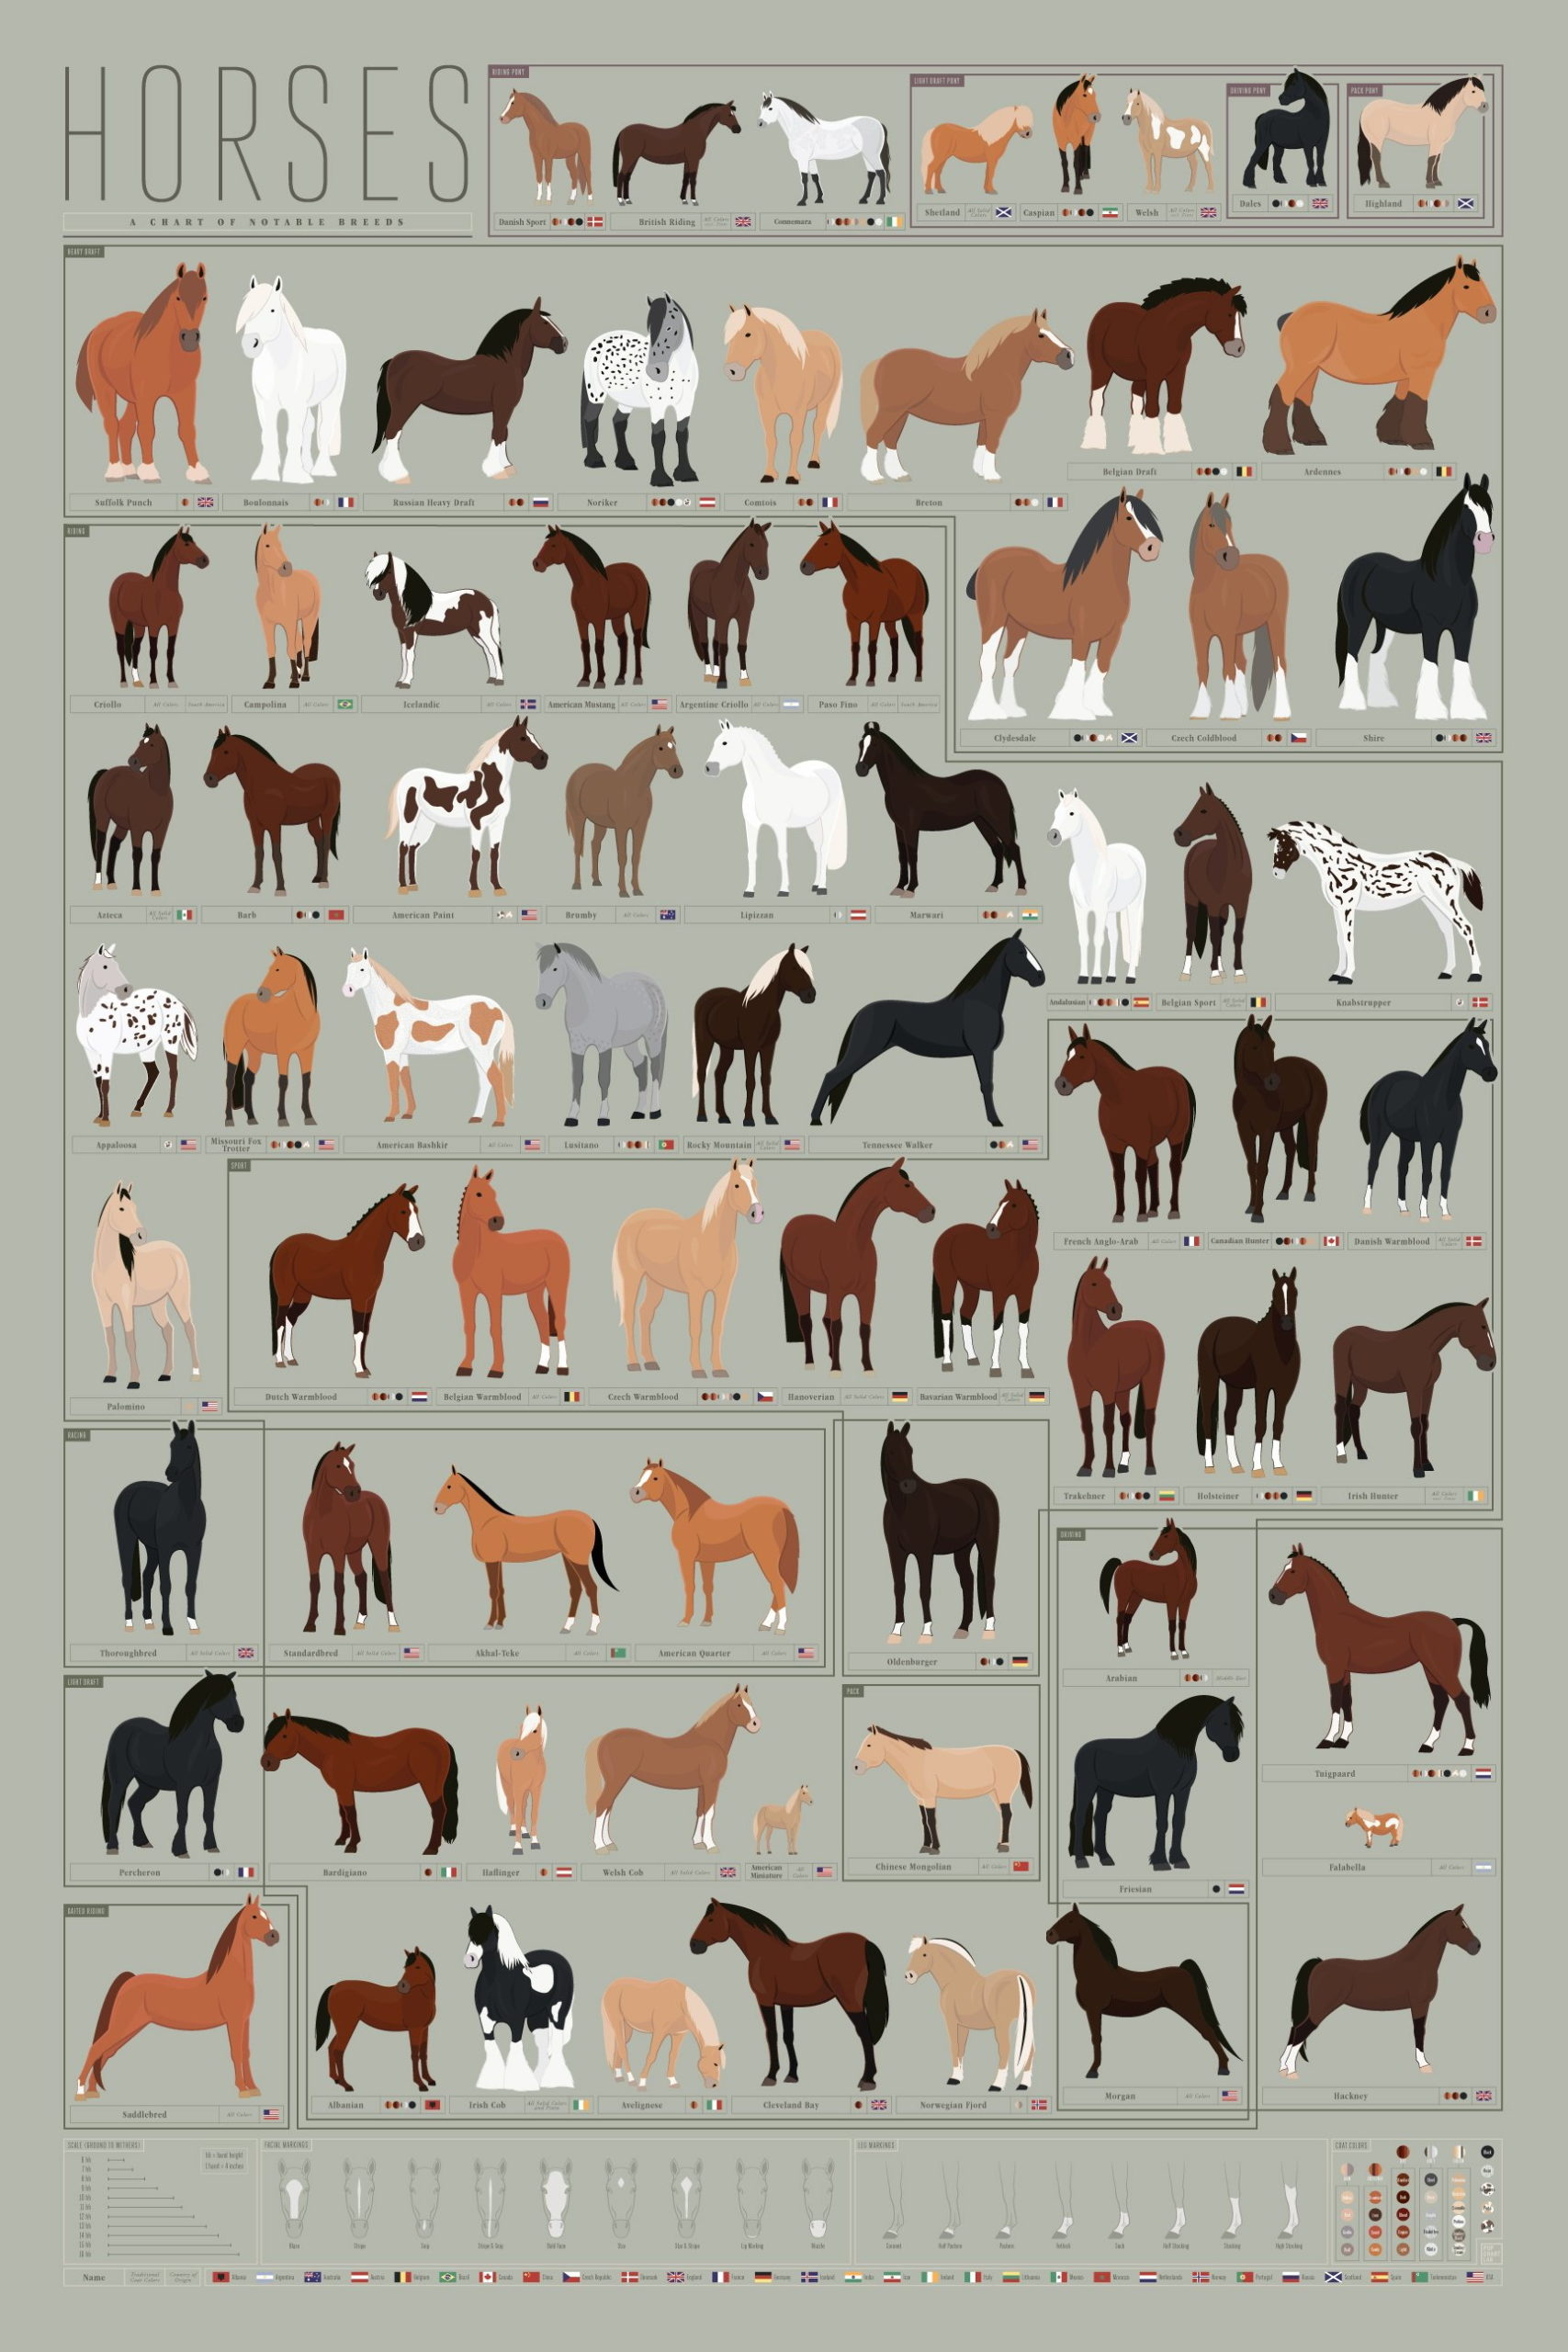 hight resolution of horses archives common sense evaluation horse color diagram horse breed diagram